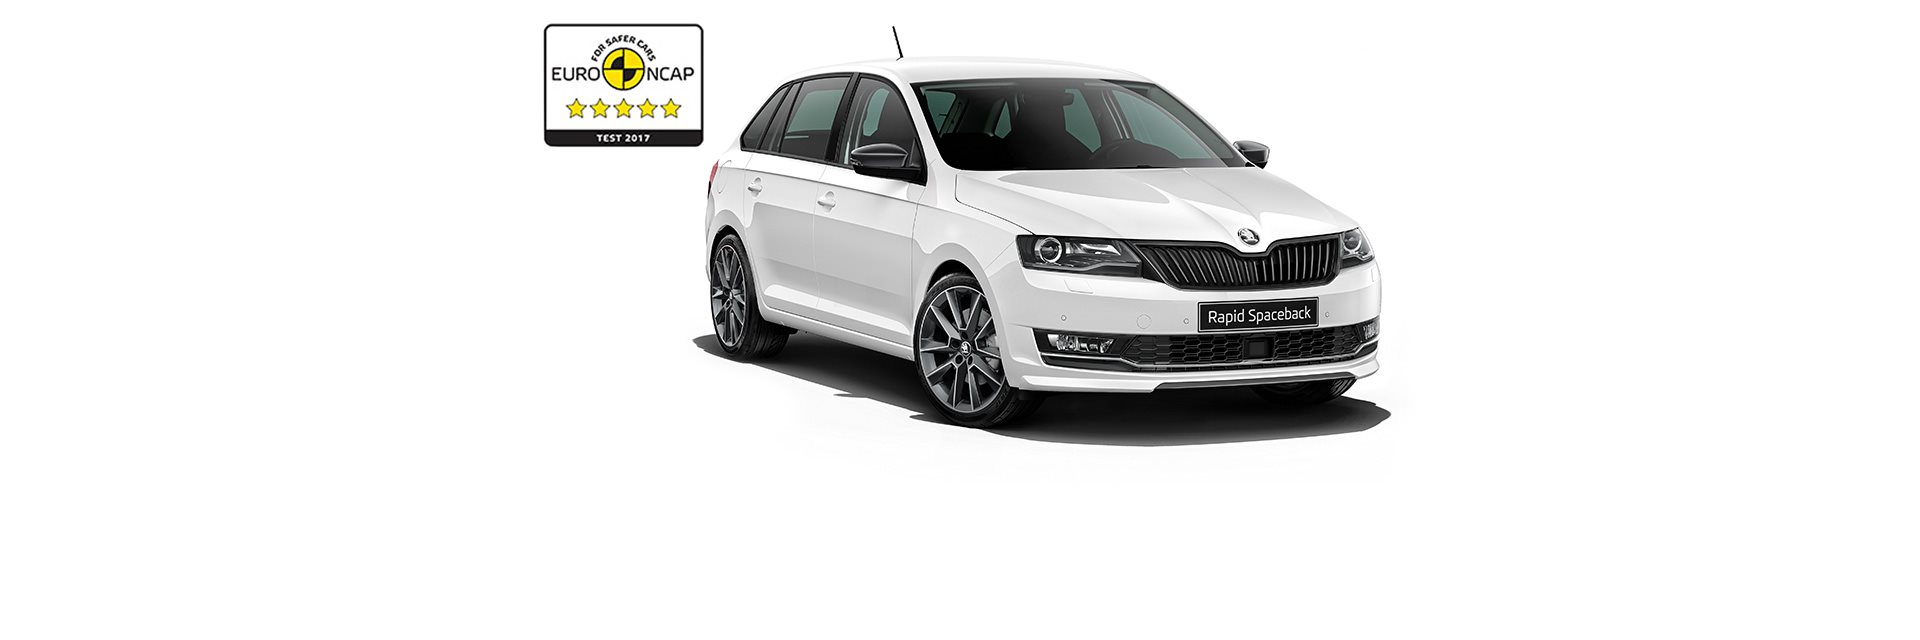 Sicurezza - ŠKODA RAPID SPACEBACK